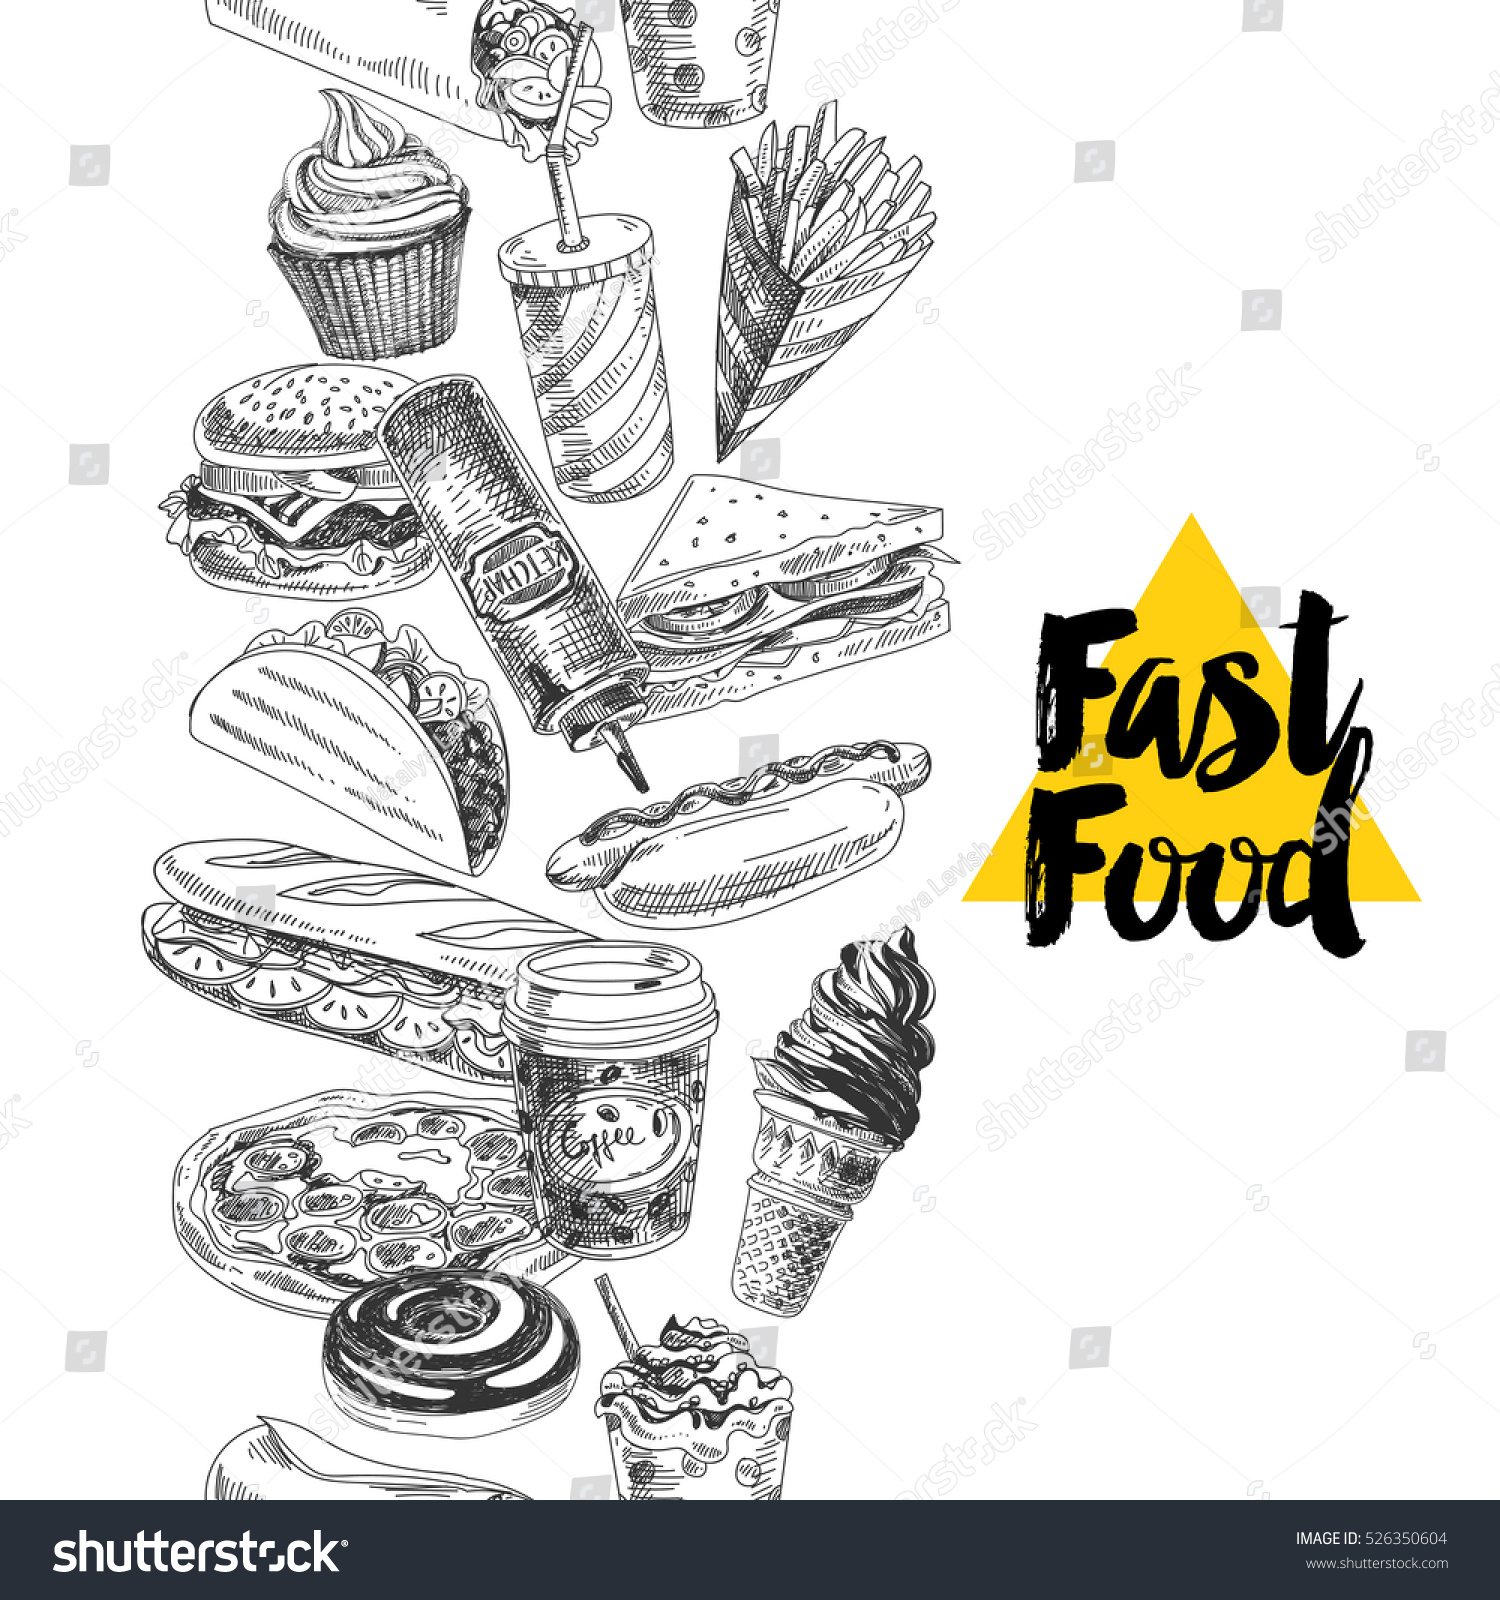 vector hand drawn fast food illustration stock vector royalty free